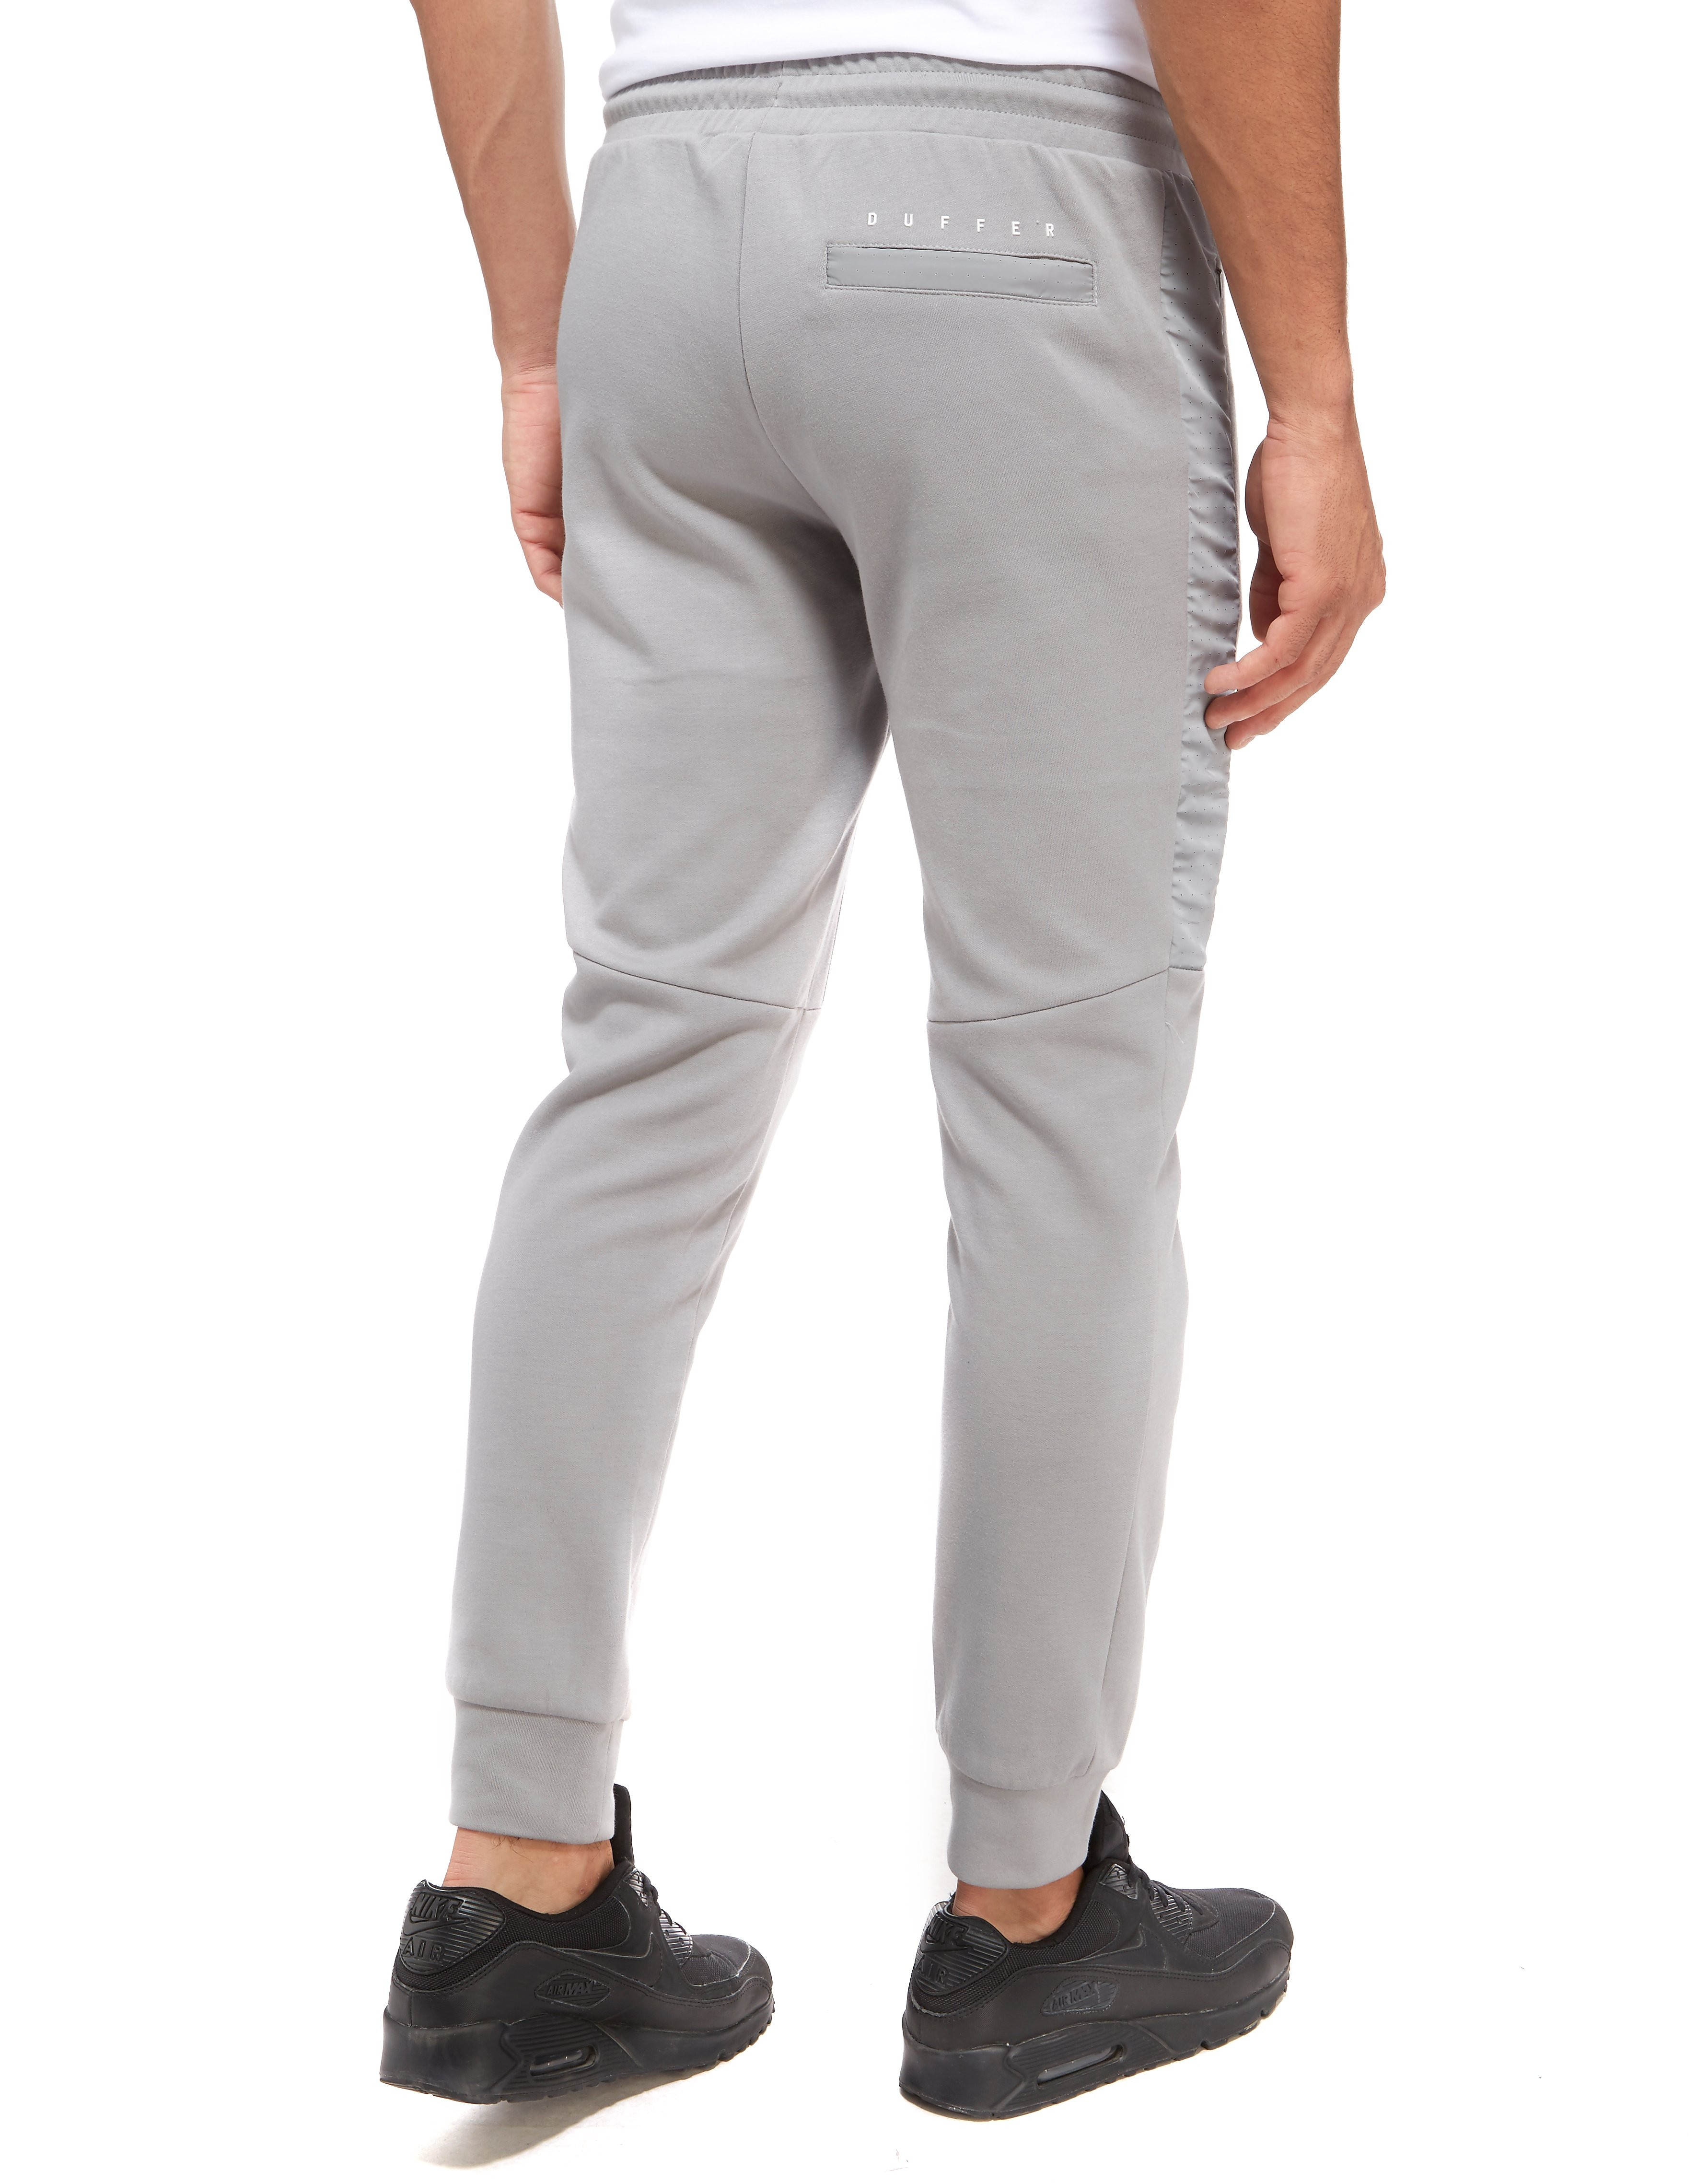 Duffer of St George Entity Jogging Pants